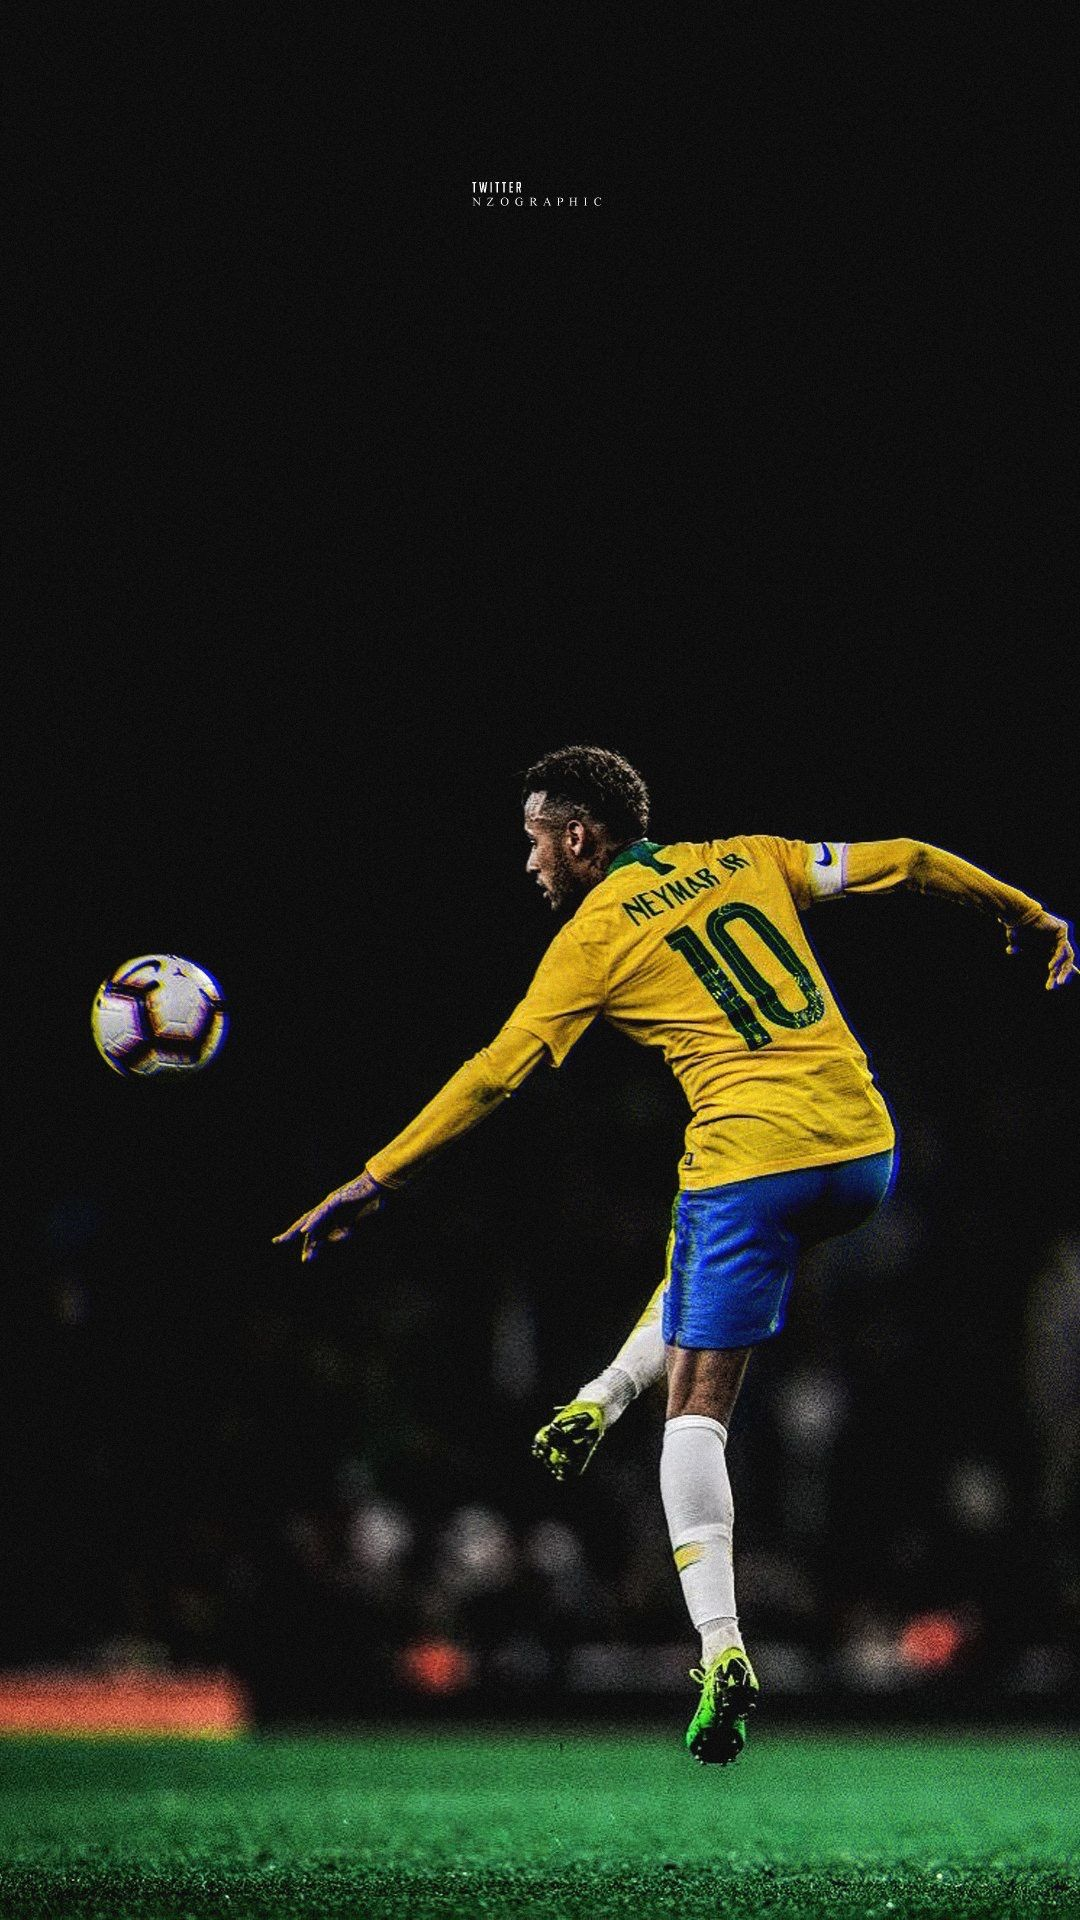 Soccer Girl Wallpaper Home Screen Neymar Neymar Jr Wallpapers Neymar Football